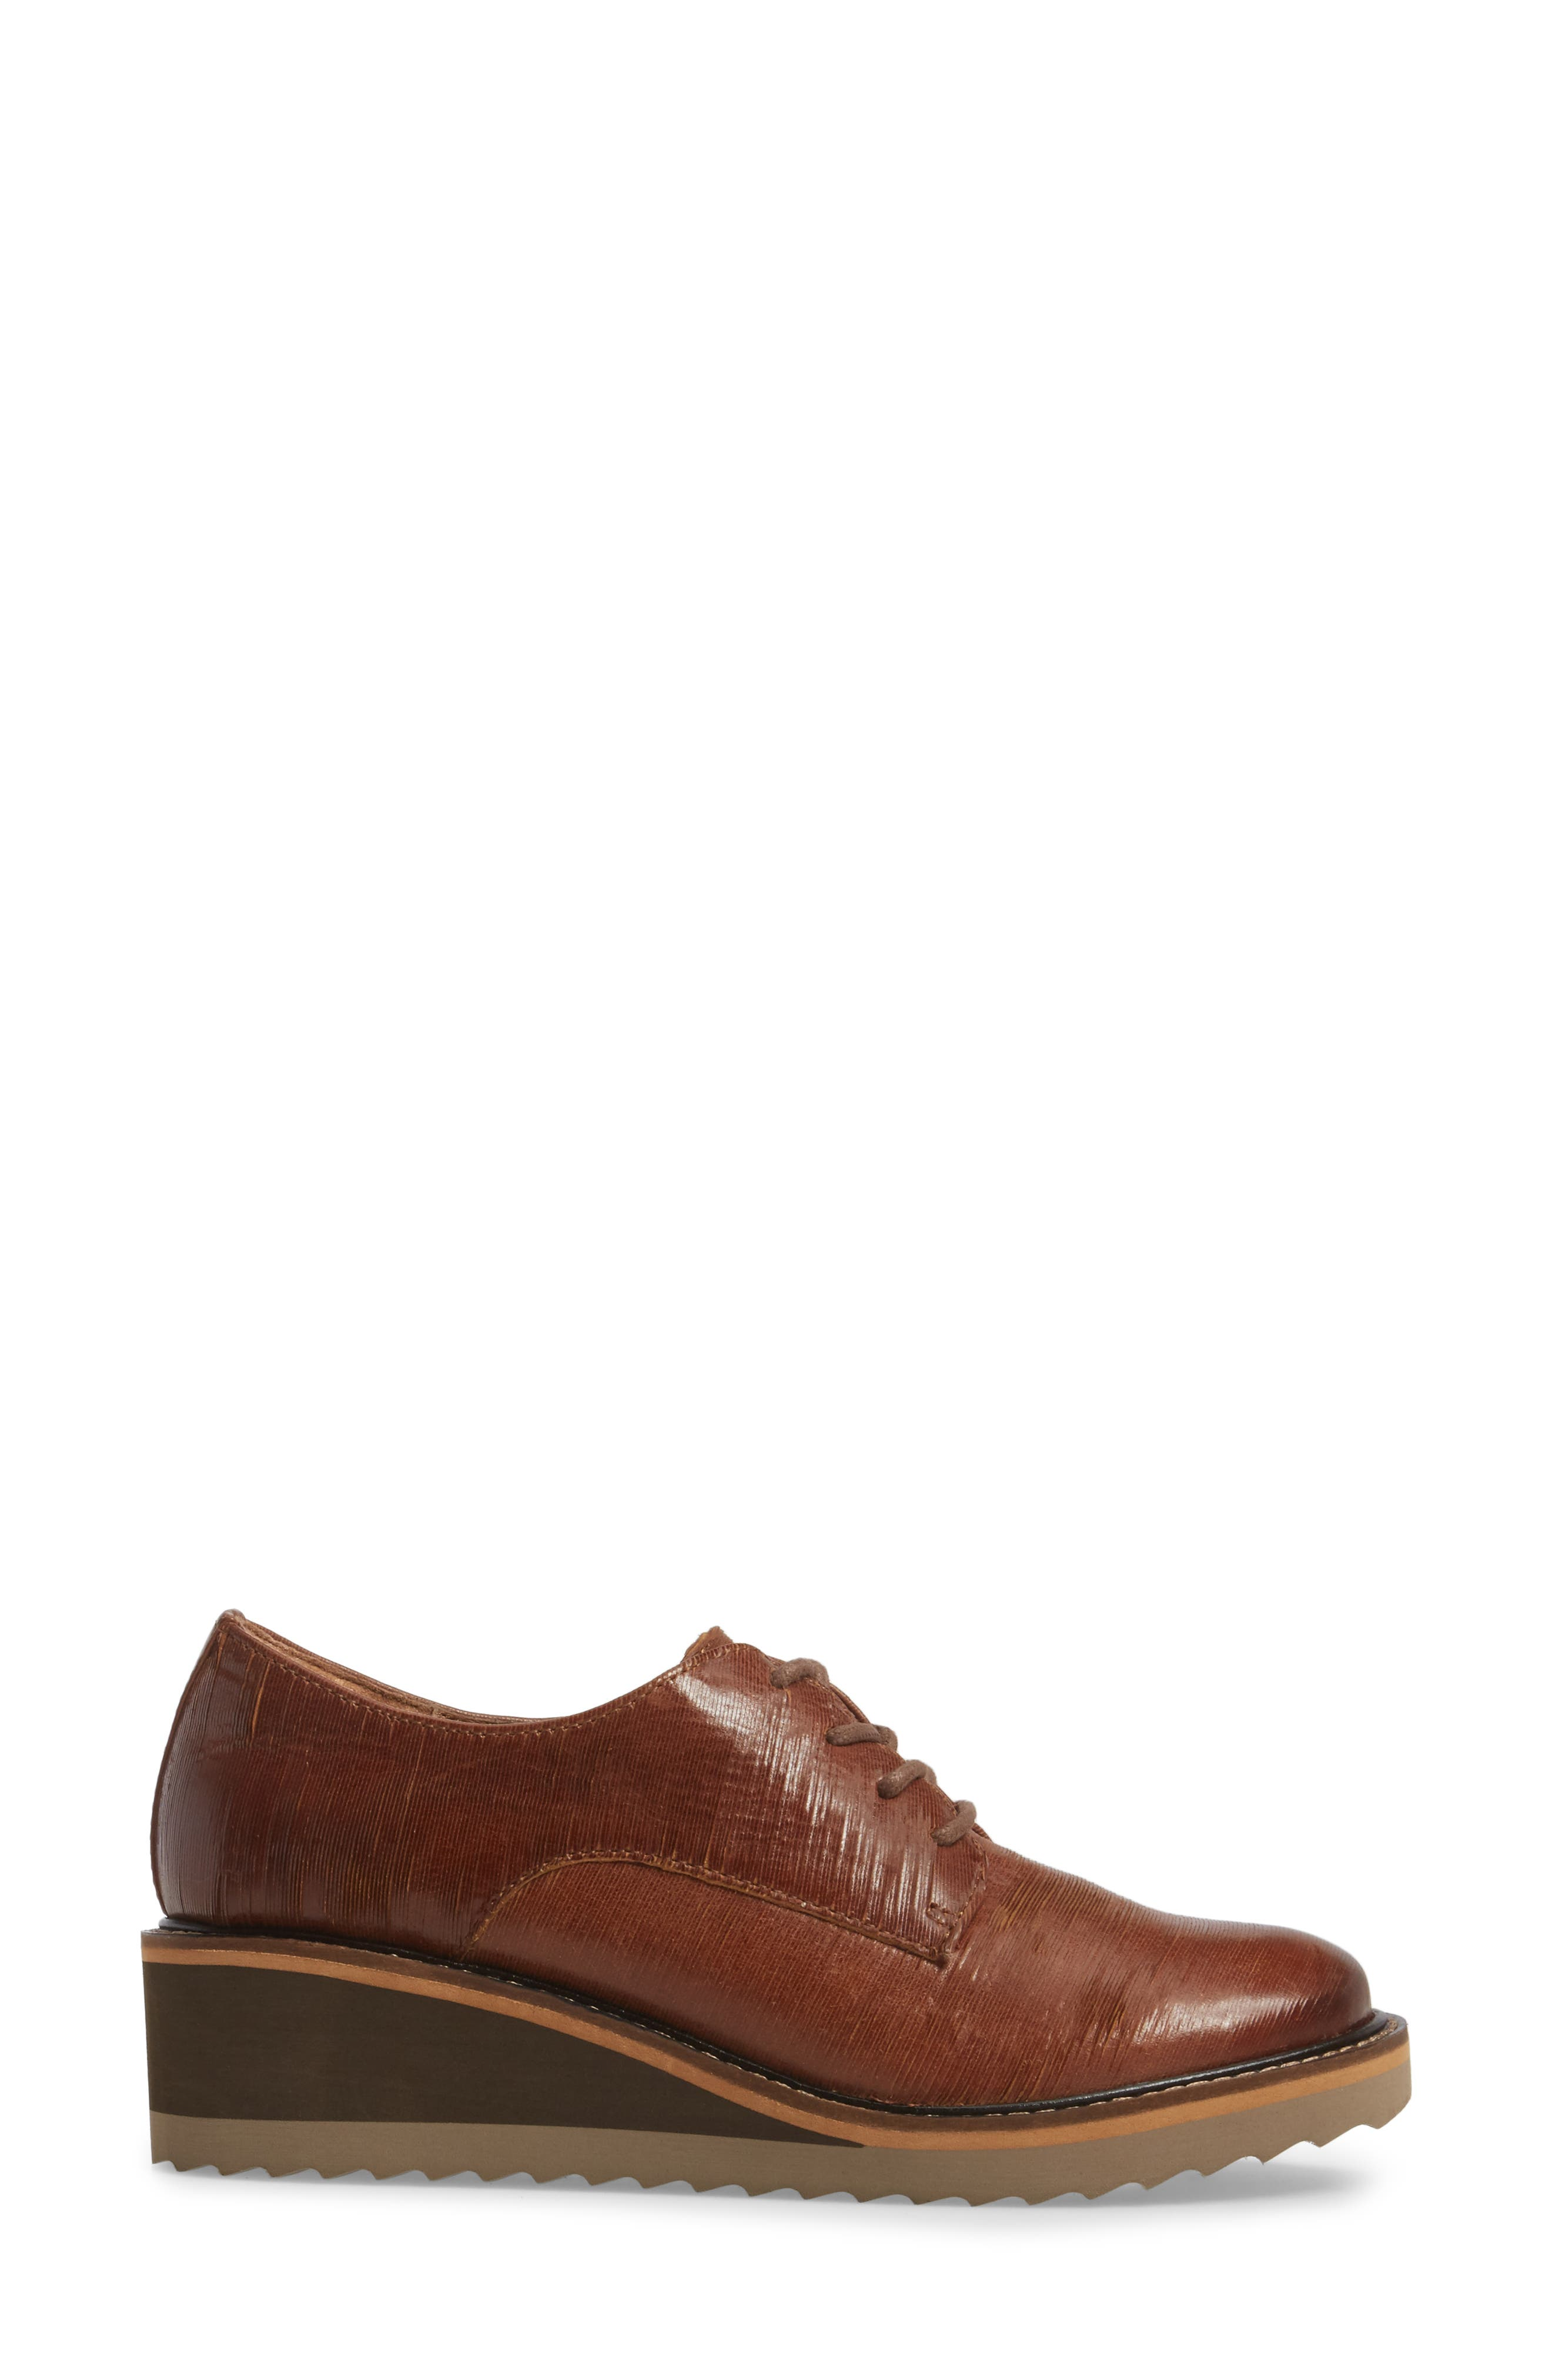 Salerno Oxford,                             Alternate thumbnail 3, color,                             WHISKEY SUEDE